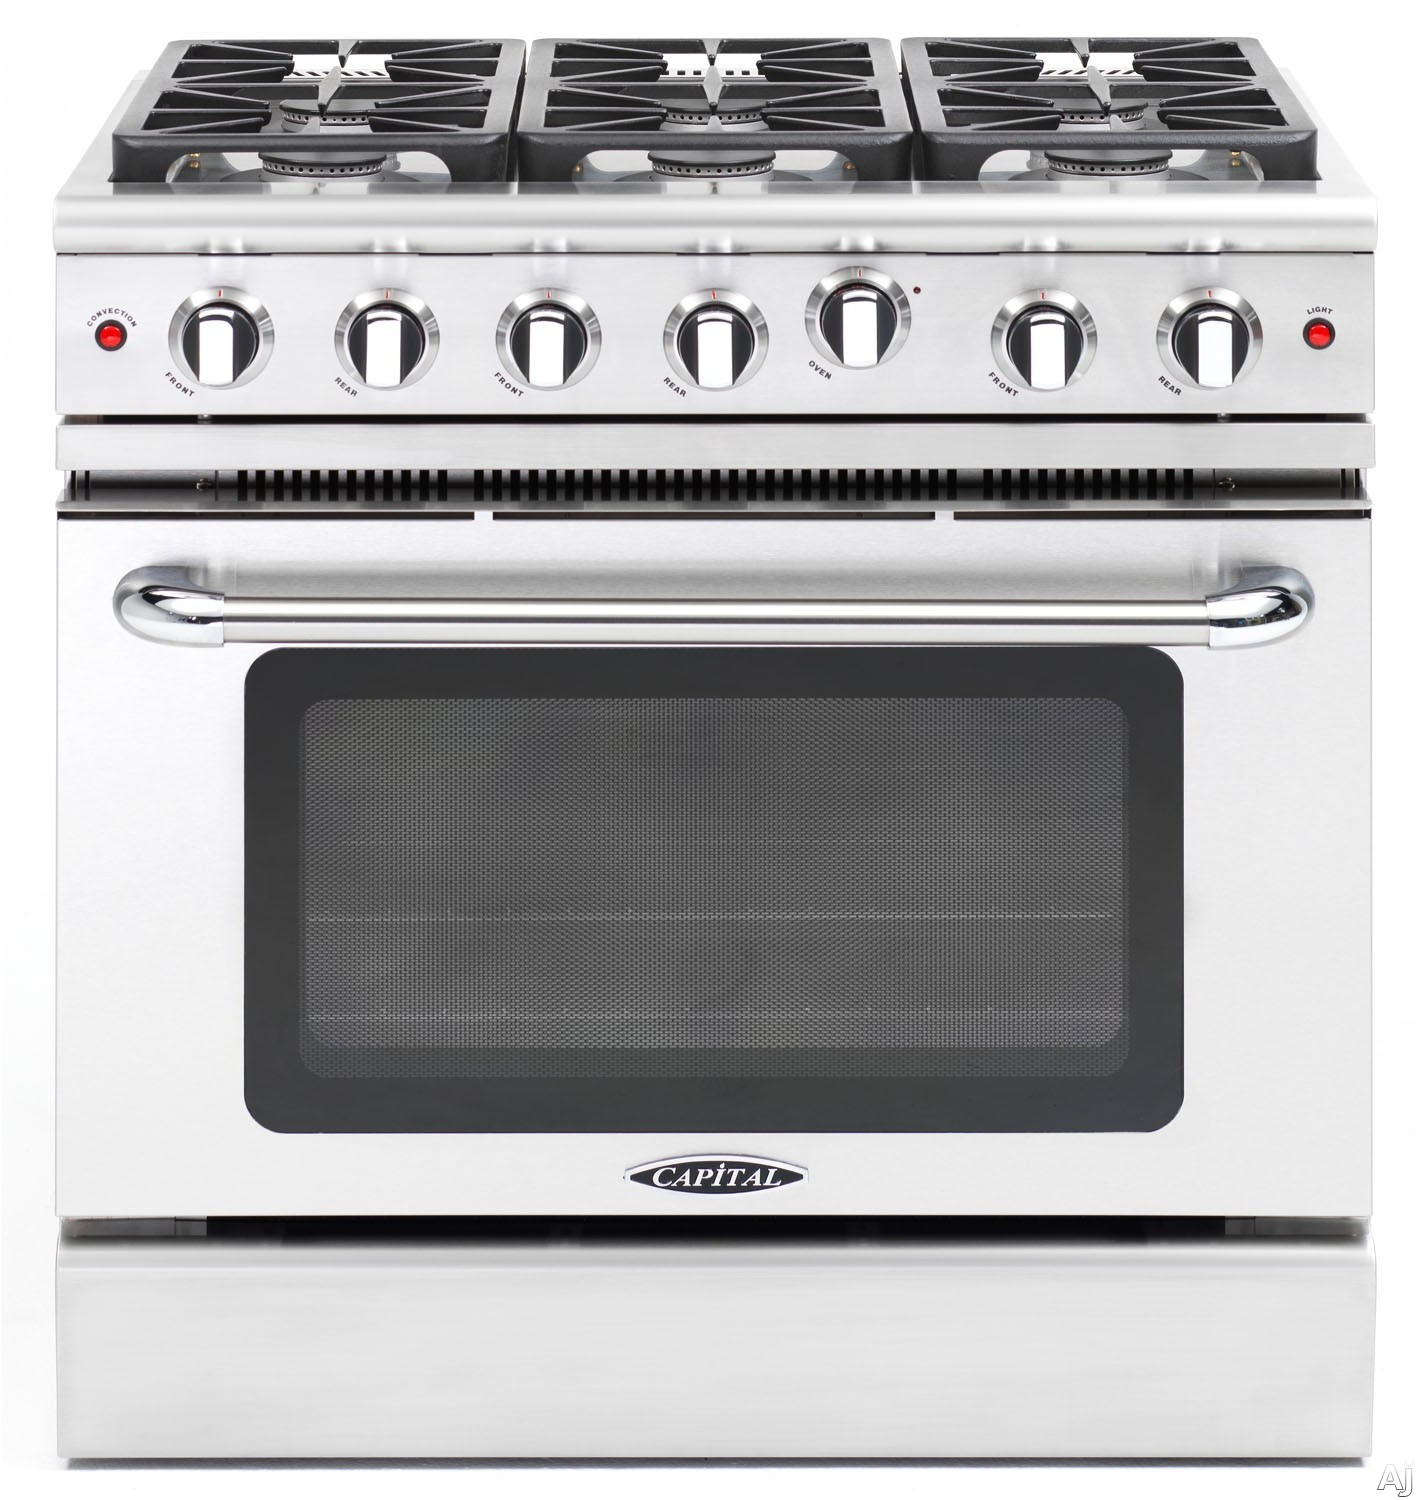 Capital Precision Series MCR366 36 Inch Pro-Style Gas Range with 6 Sealed Burners, Convection Oven, Infrared Broil Burner, Interior Oven Light, Continuous Grates and 4.9 cu. ft. Oven